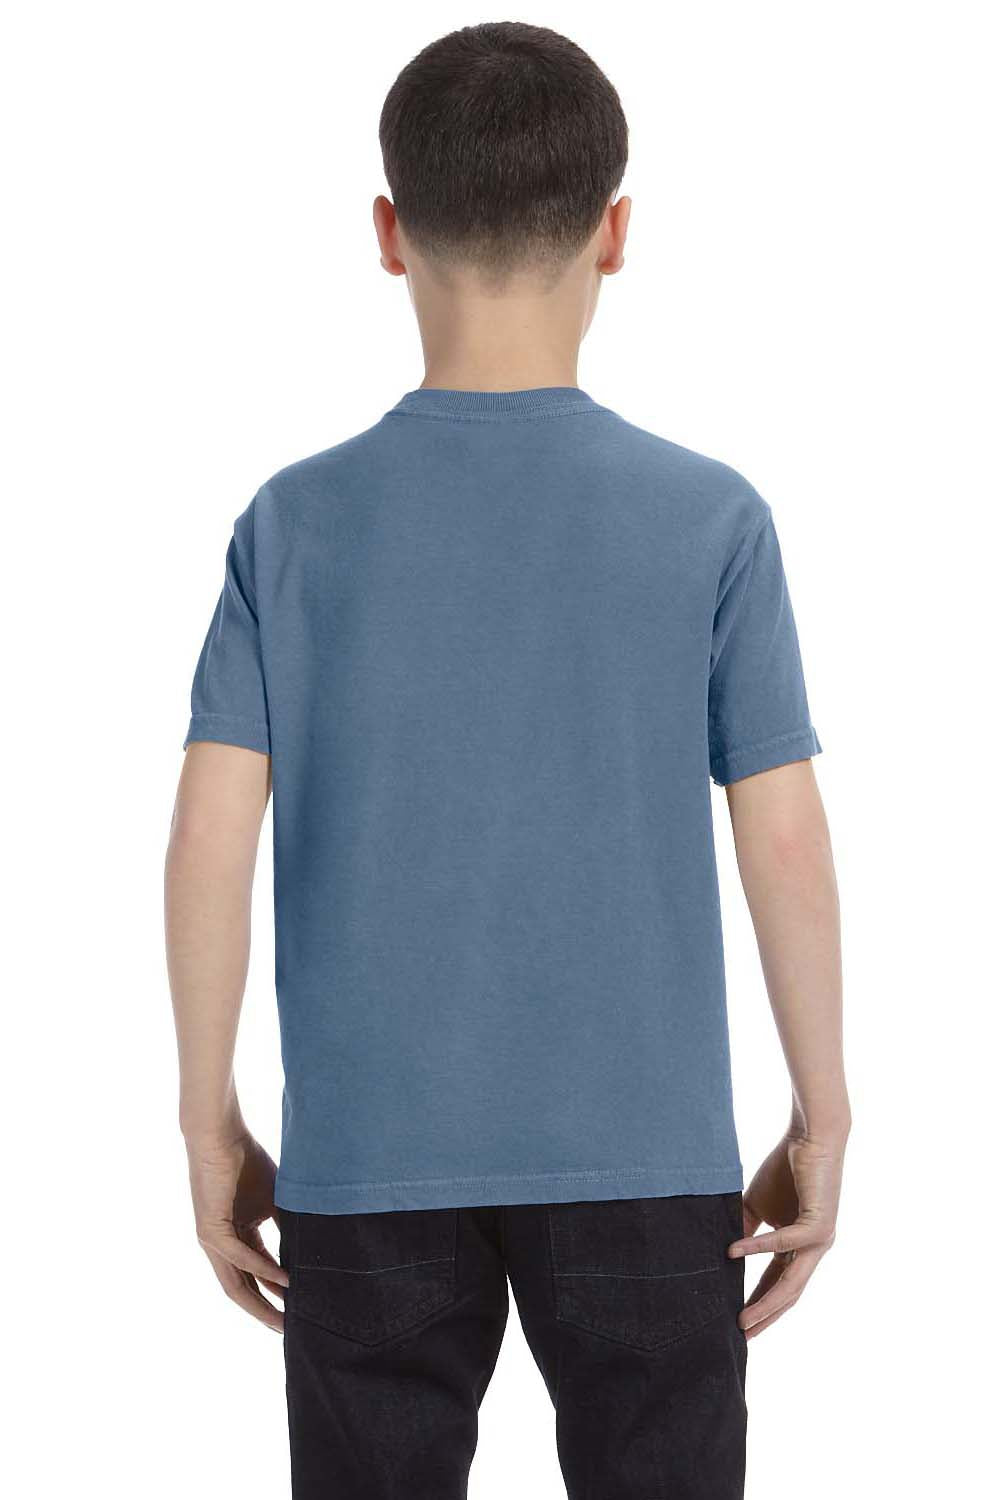 Comfort Colors C9018 Youth Short Sleeve Crewneck T-Shirt Blue Jean Back